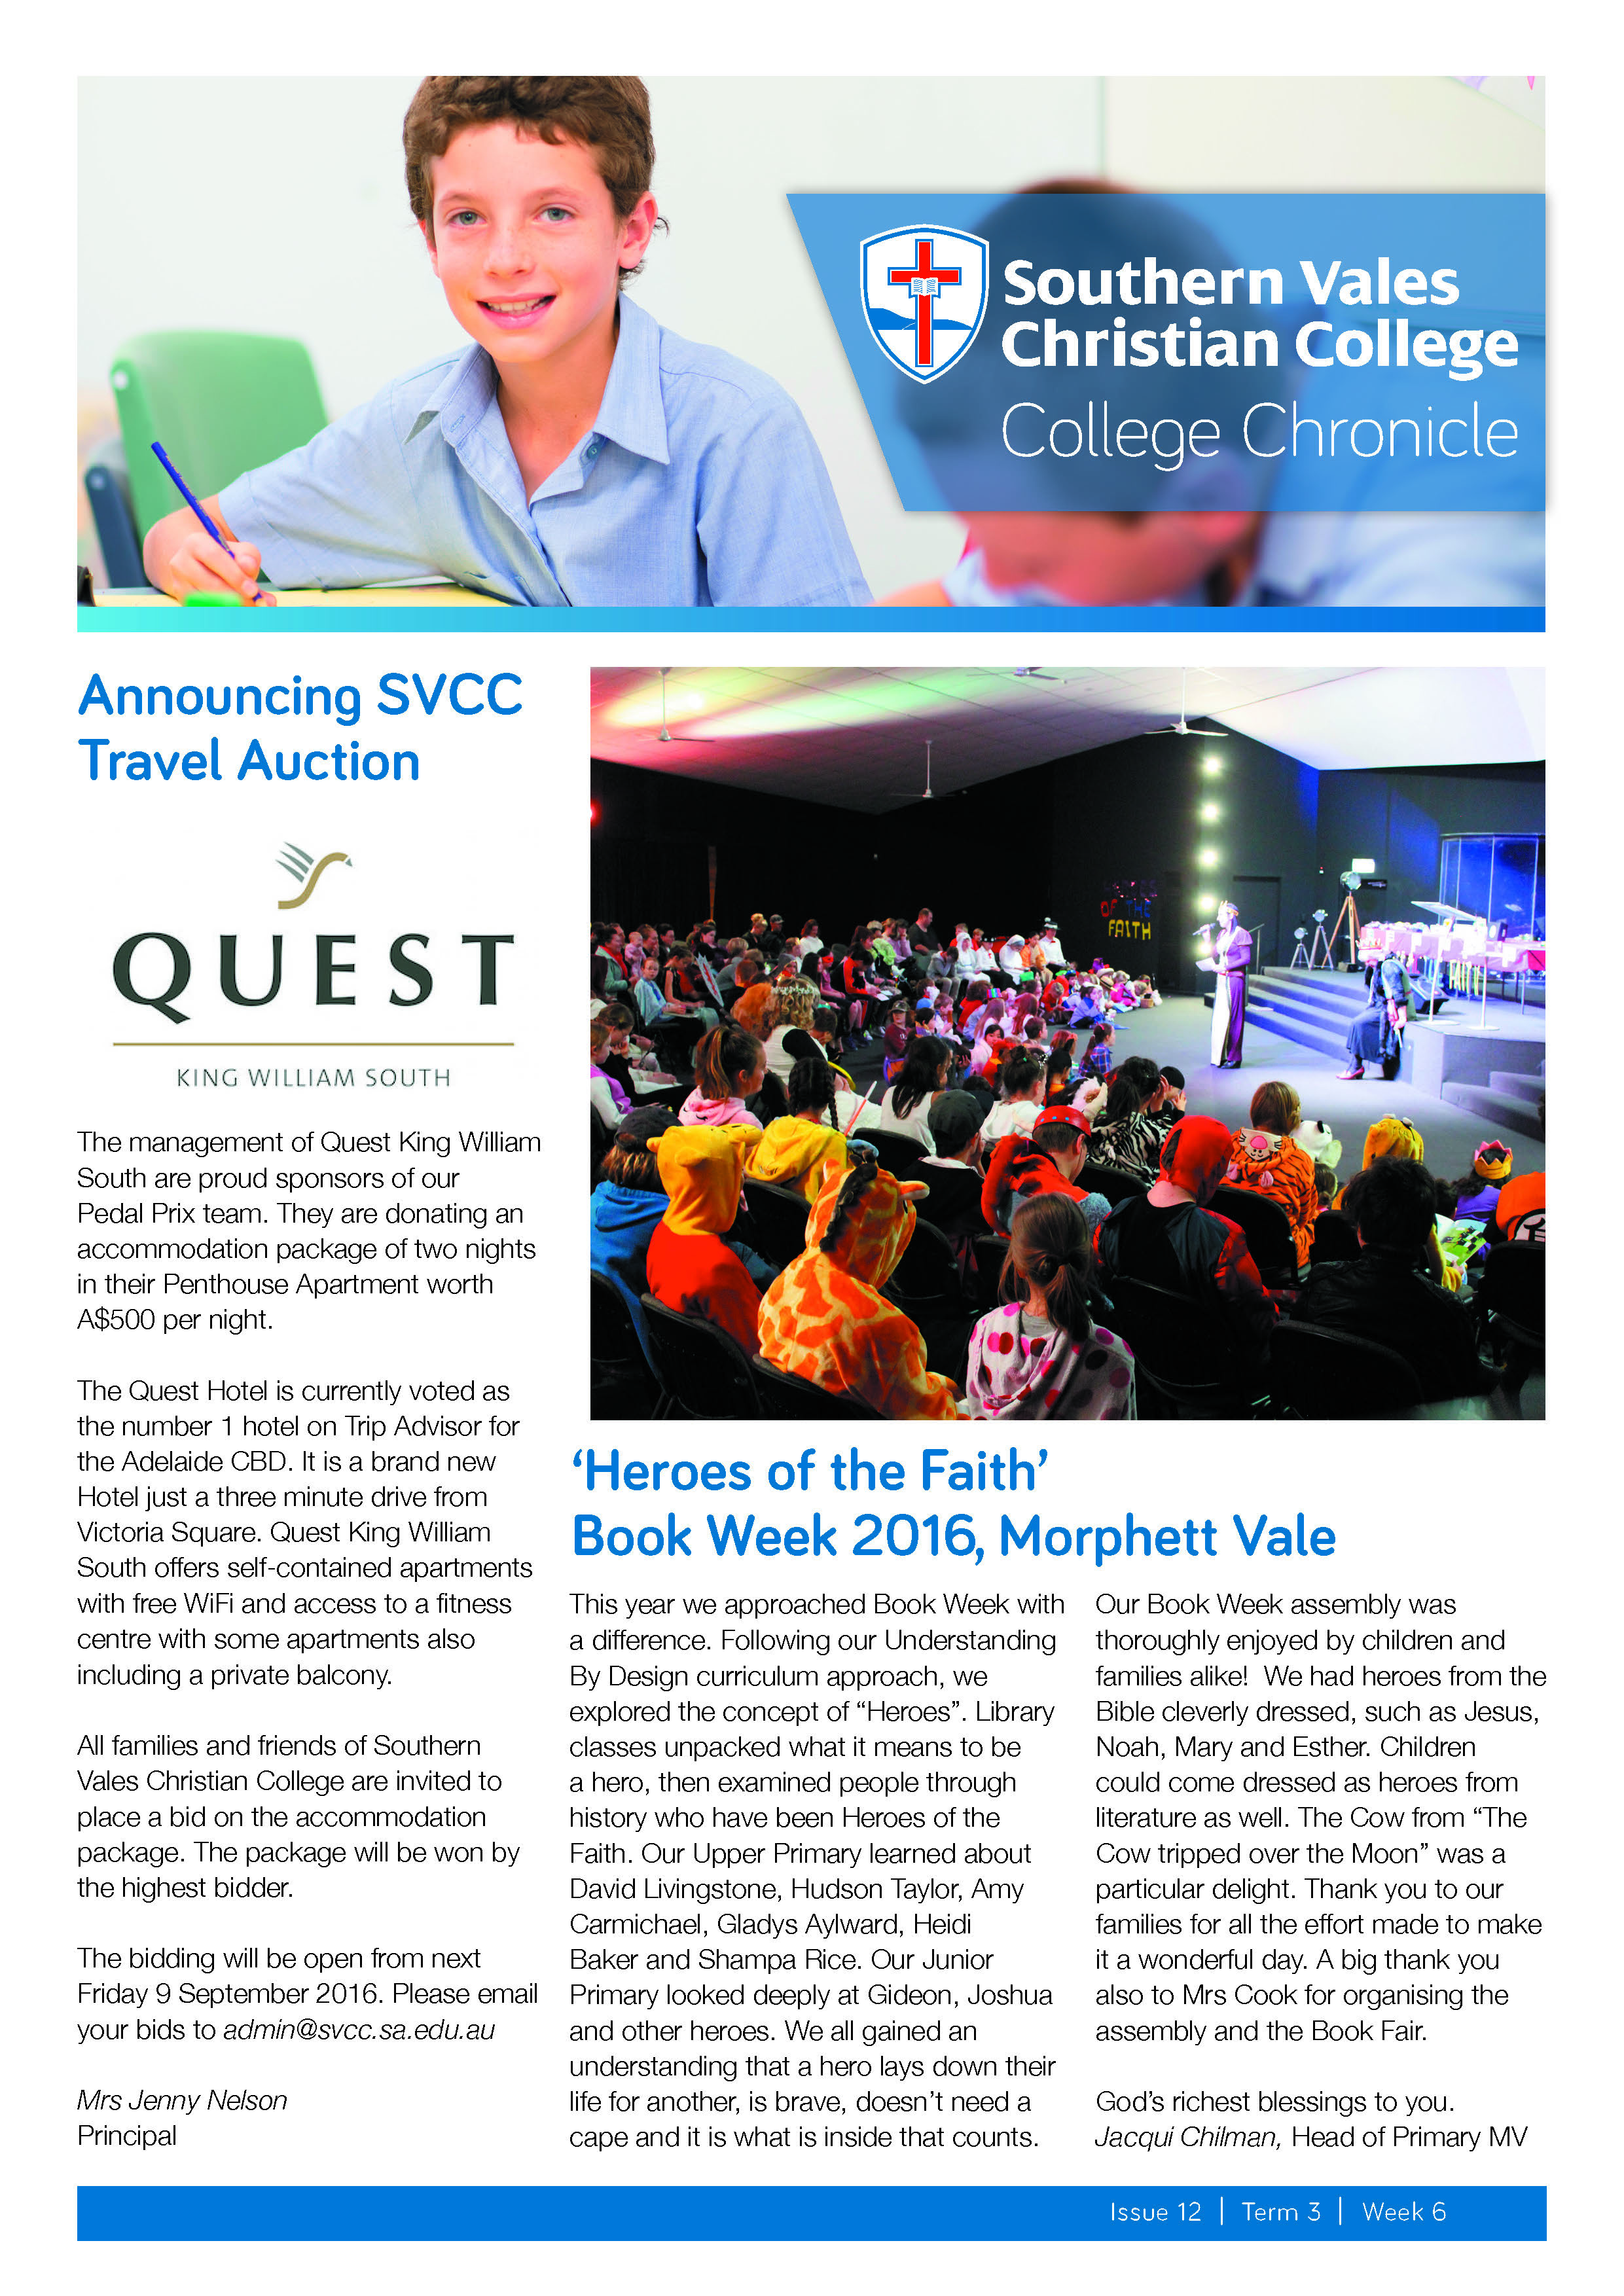 College Chronicle Issue 12 2016_Page_1.jpg